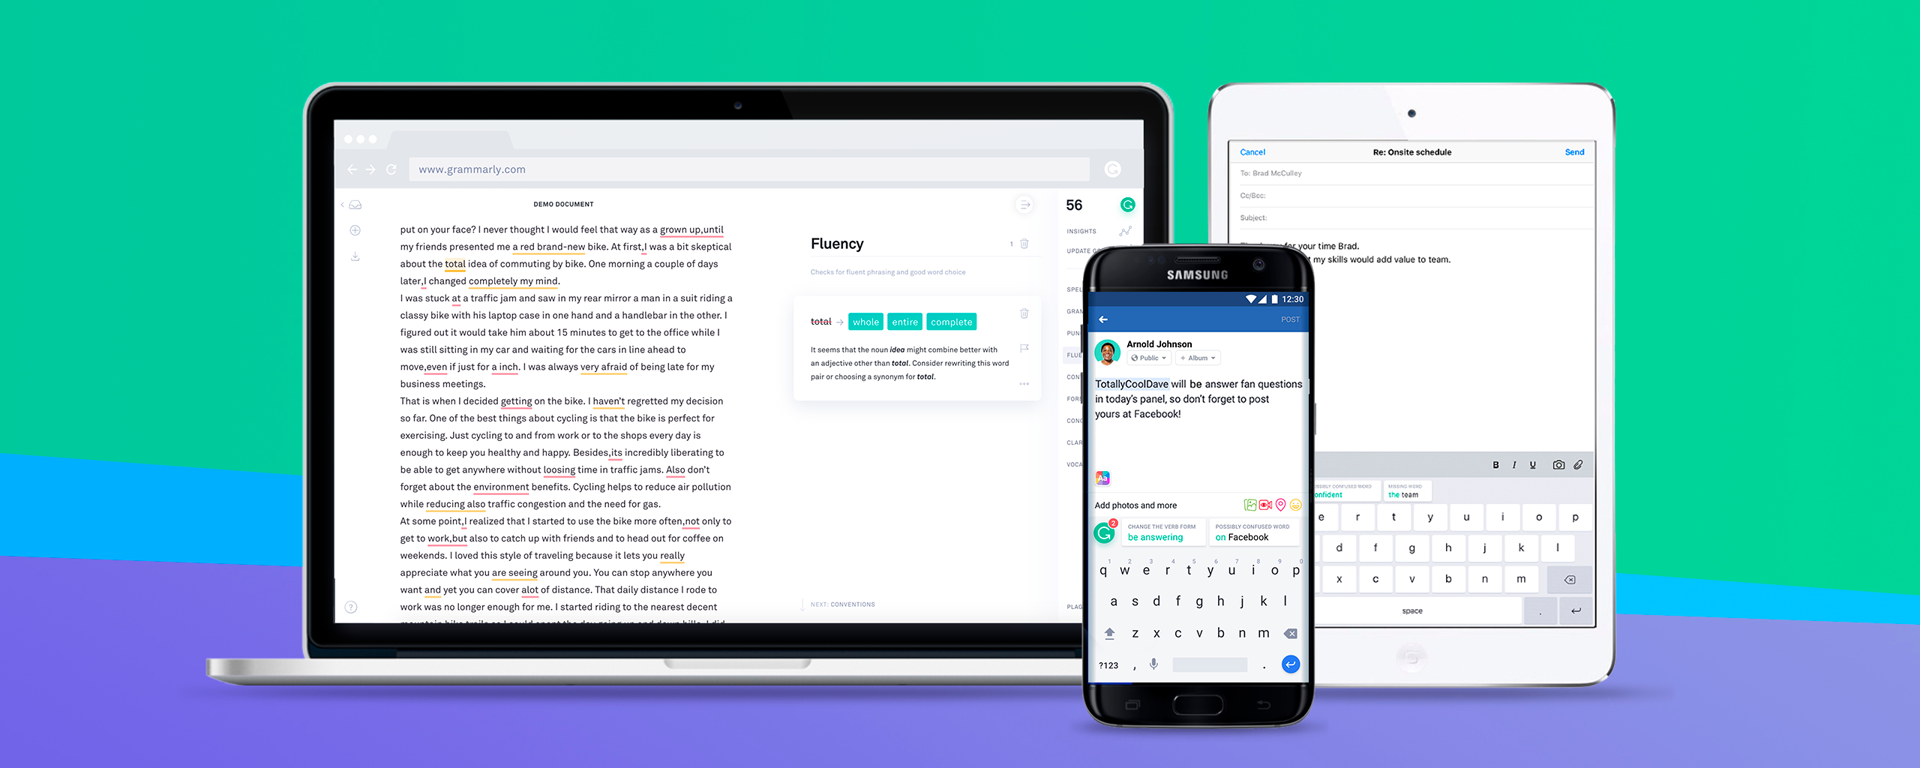 Grammarly Proofreading Software Refurbished Coupon Code 2020